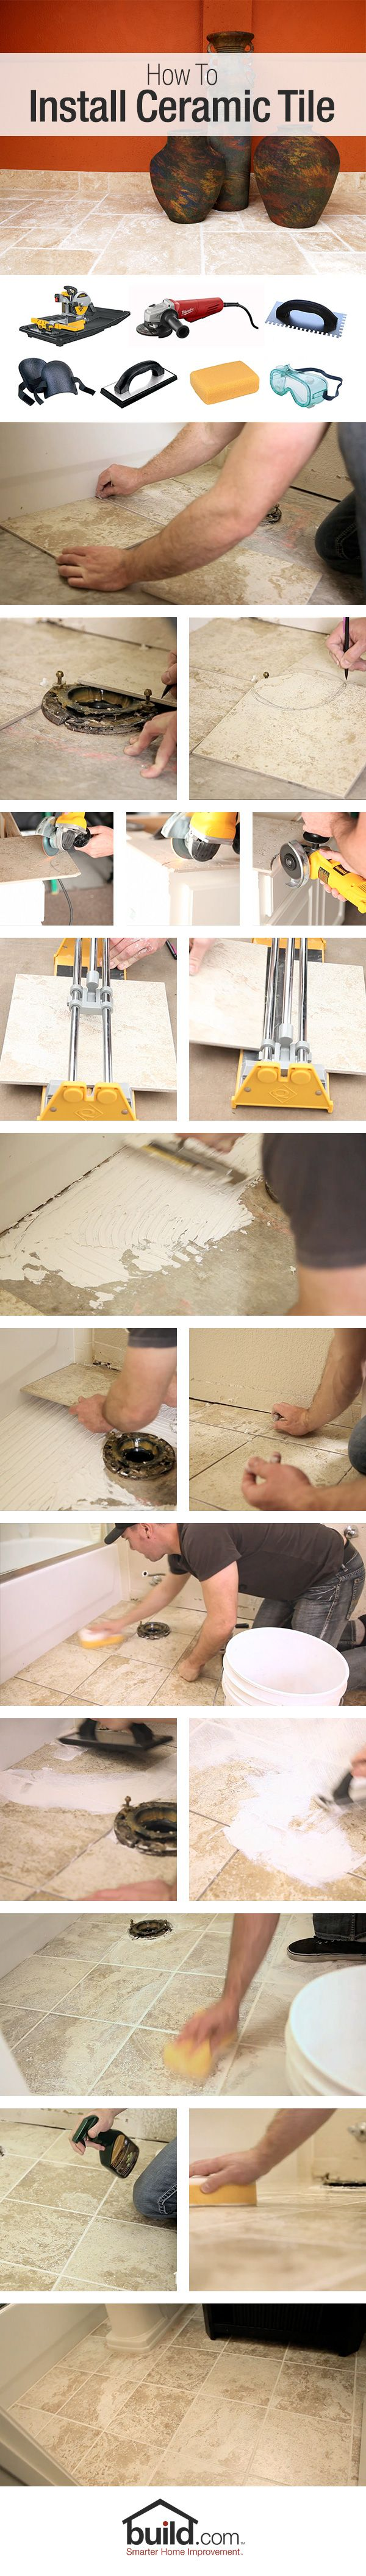 How To Install Ceramic Tile Learning Inspiration And Construction